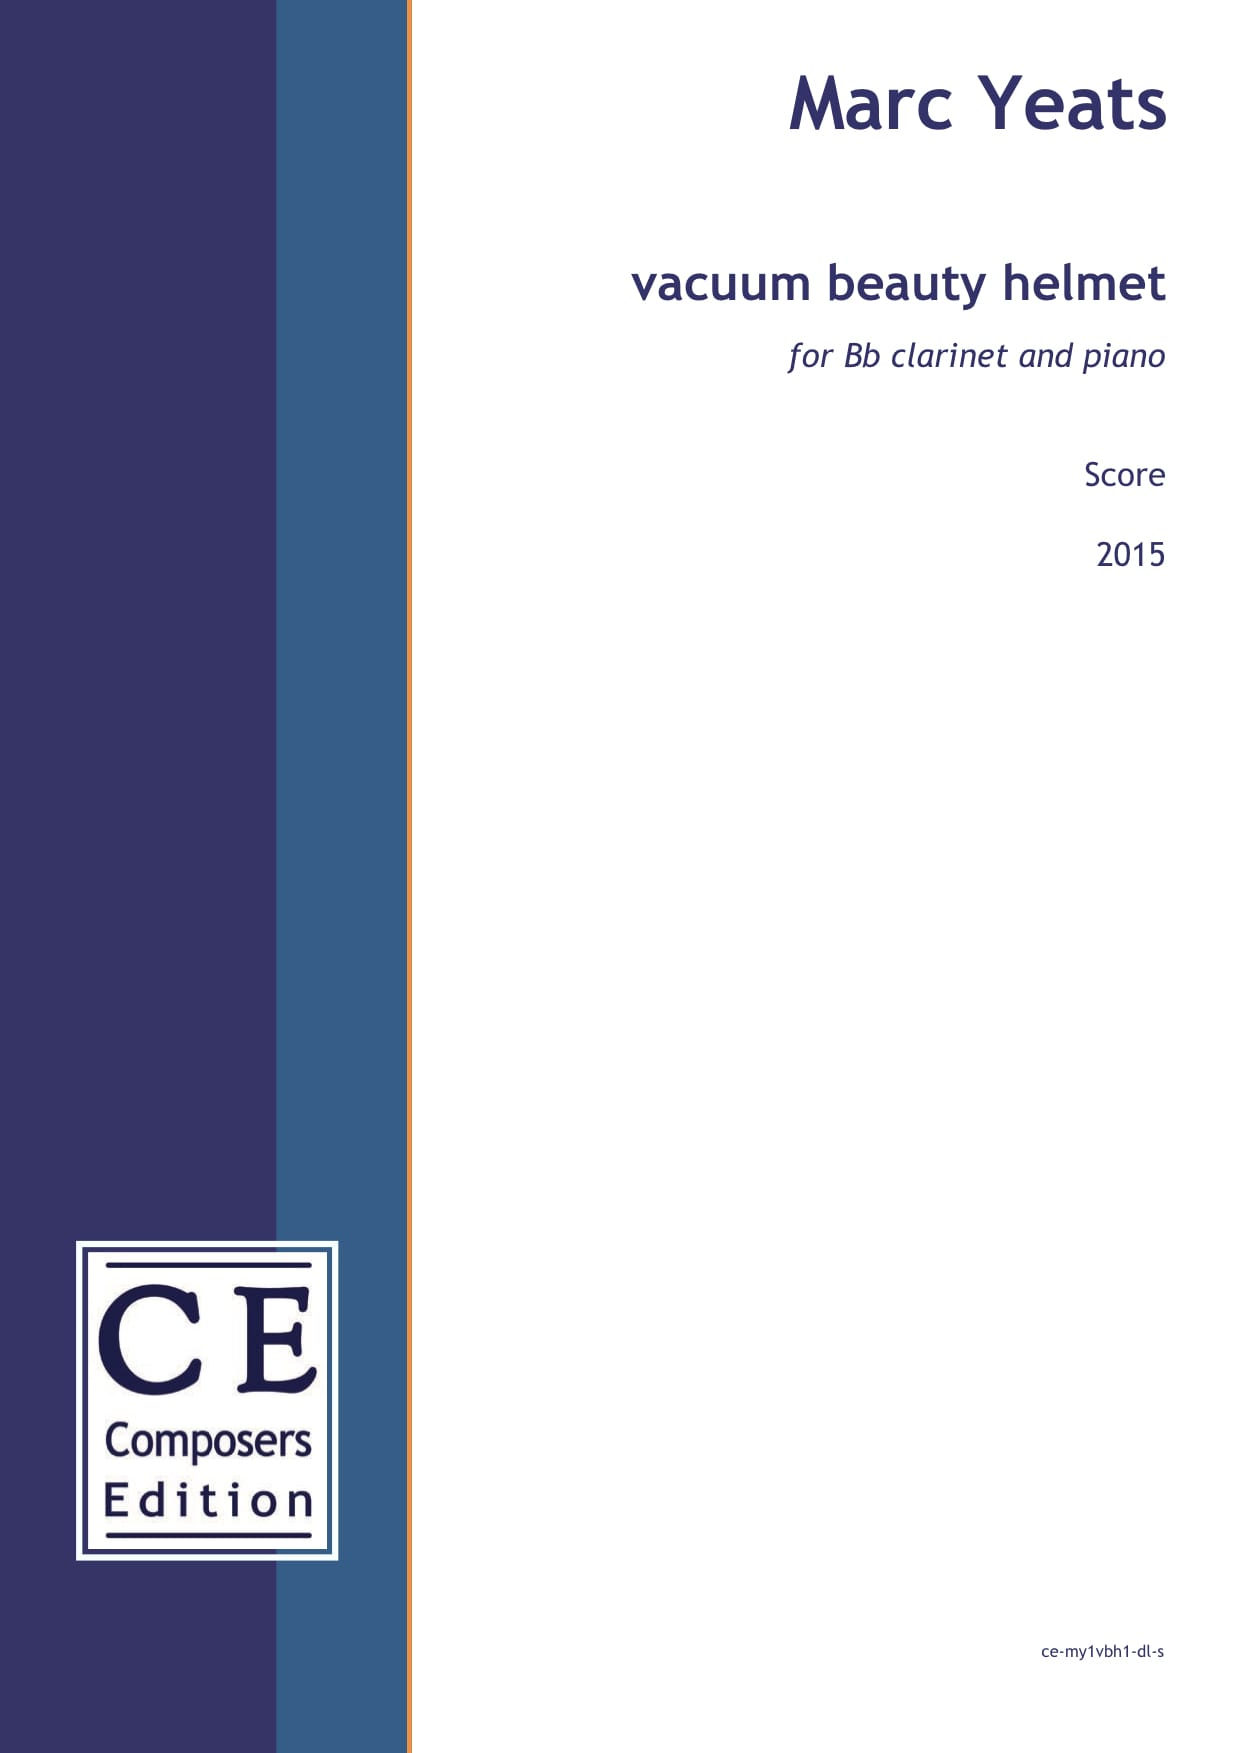 Marc Yeats: vacuum beauty helmet for Bb clarinet and piano